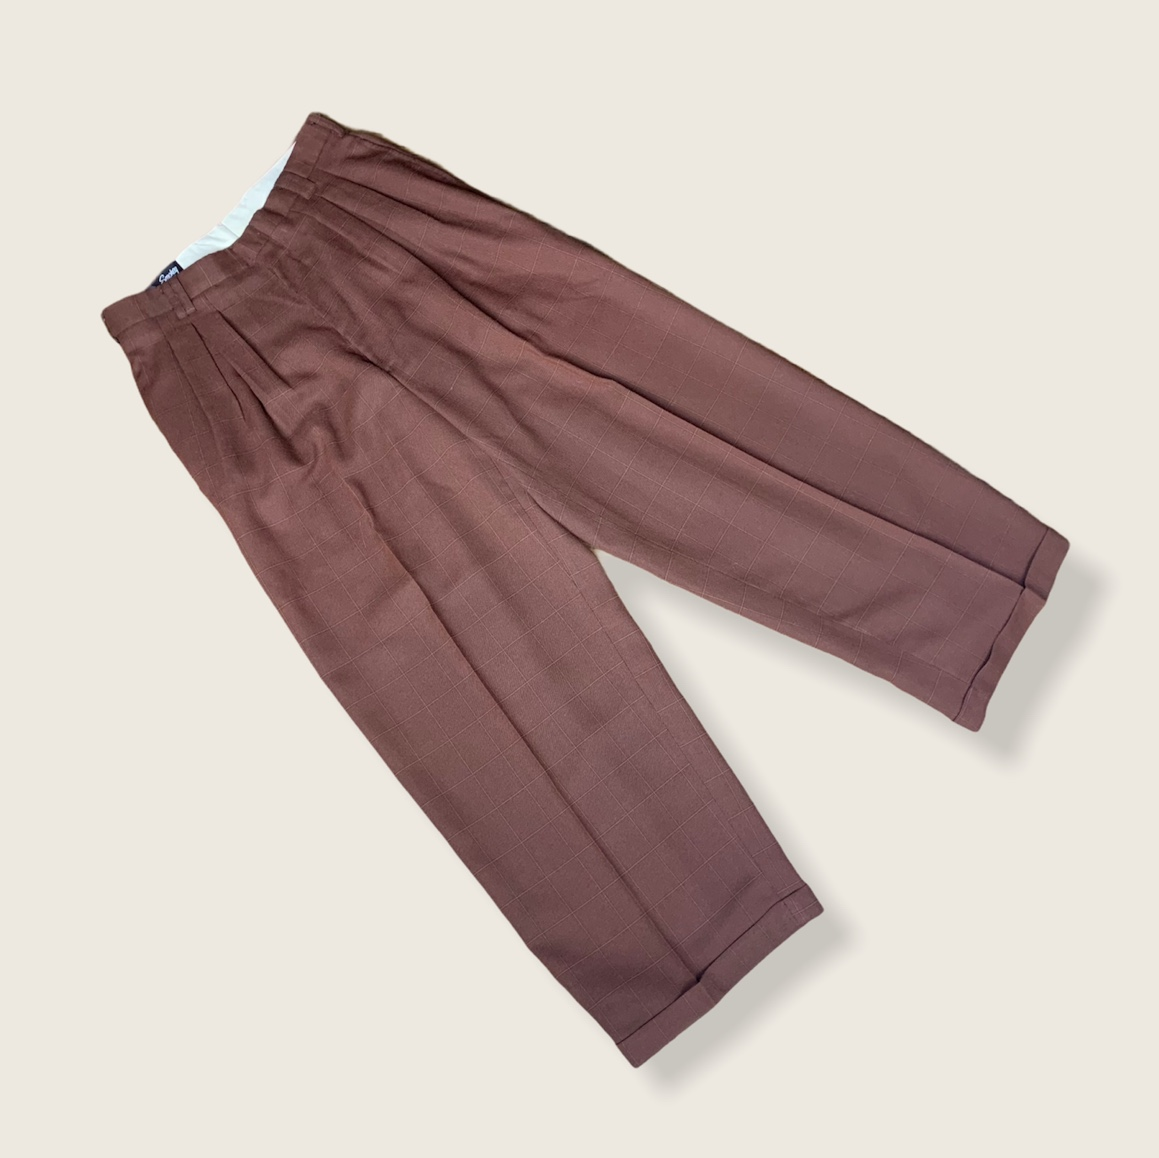 Product Image 1 - smokey joes creased trousers  tag says